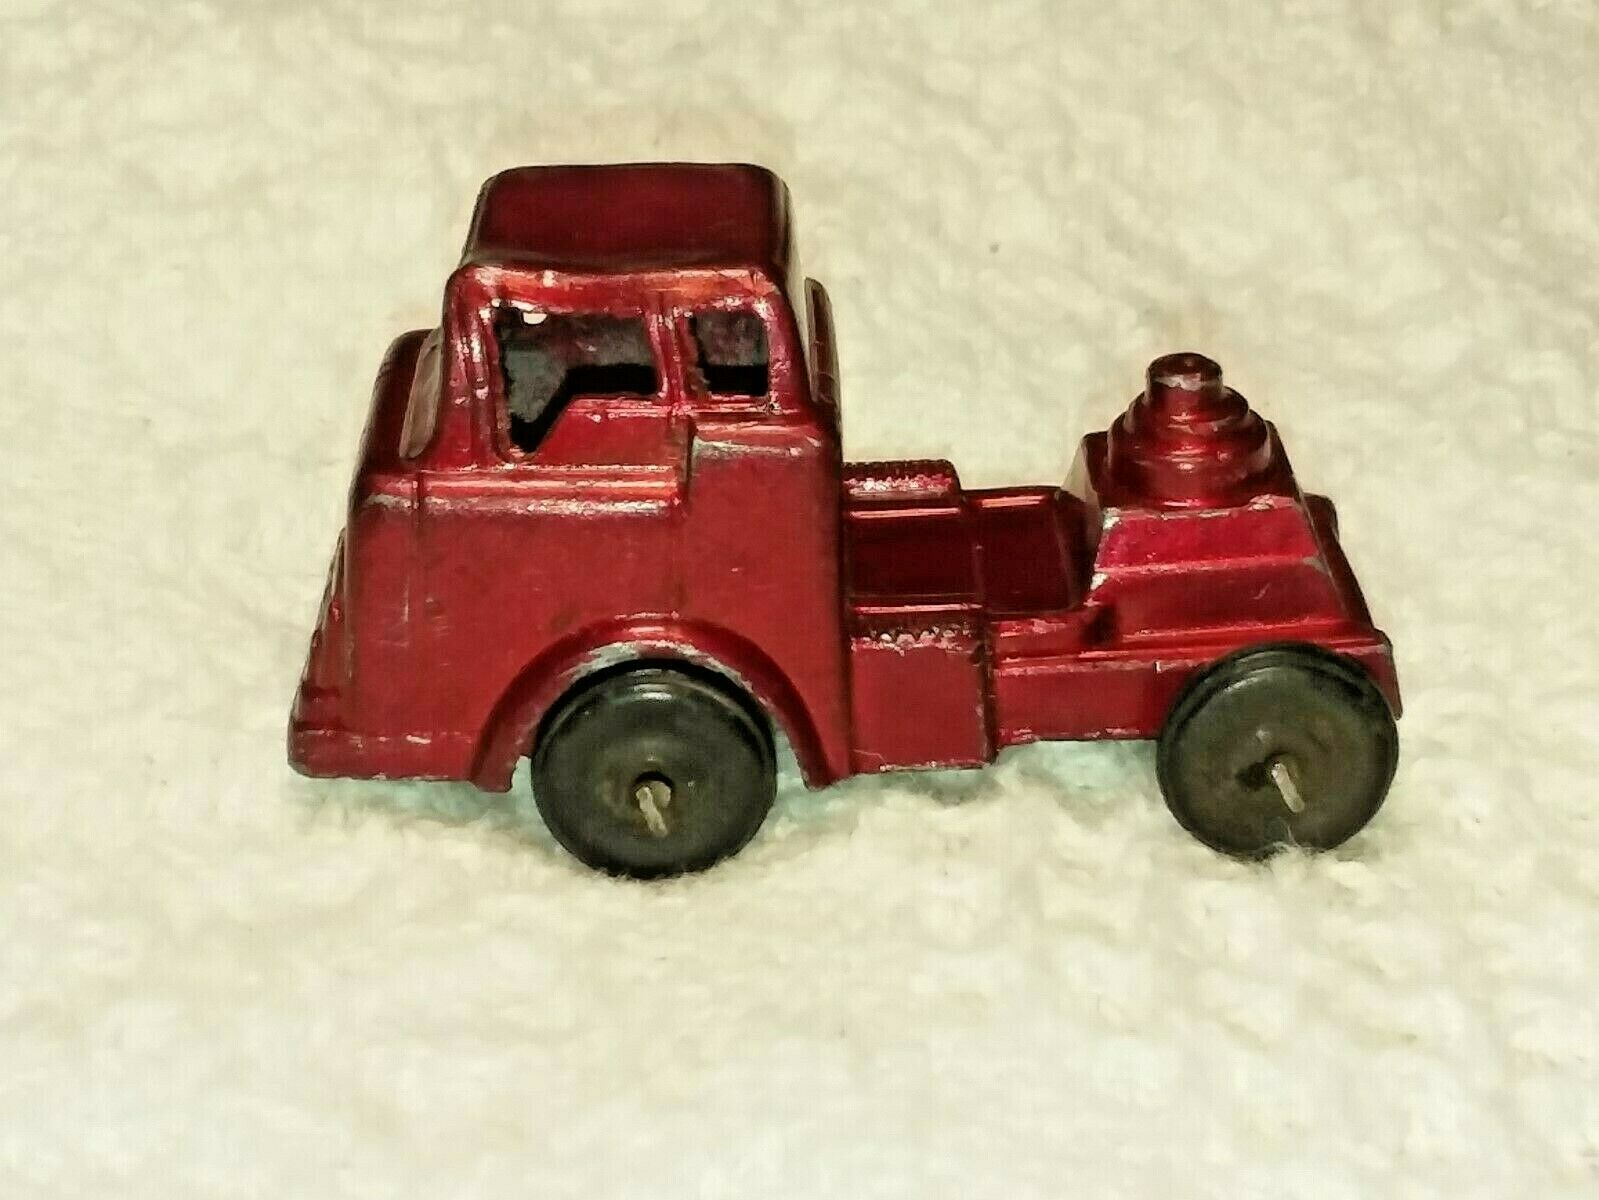 Vintage Barclay Slush Cast Metal Toy Transport Truck